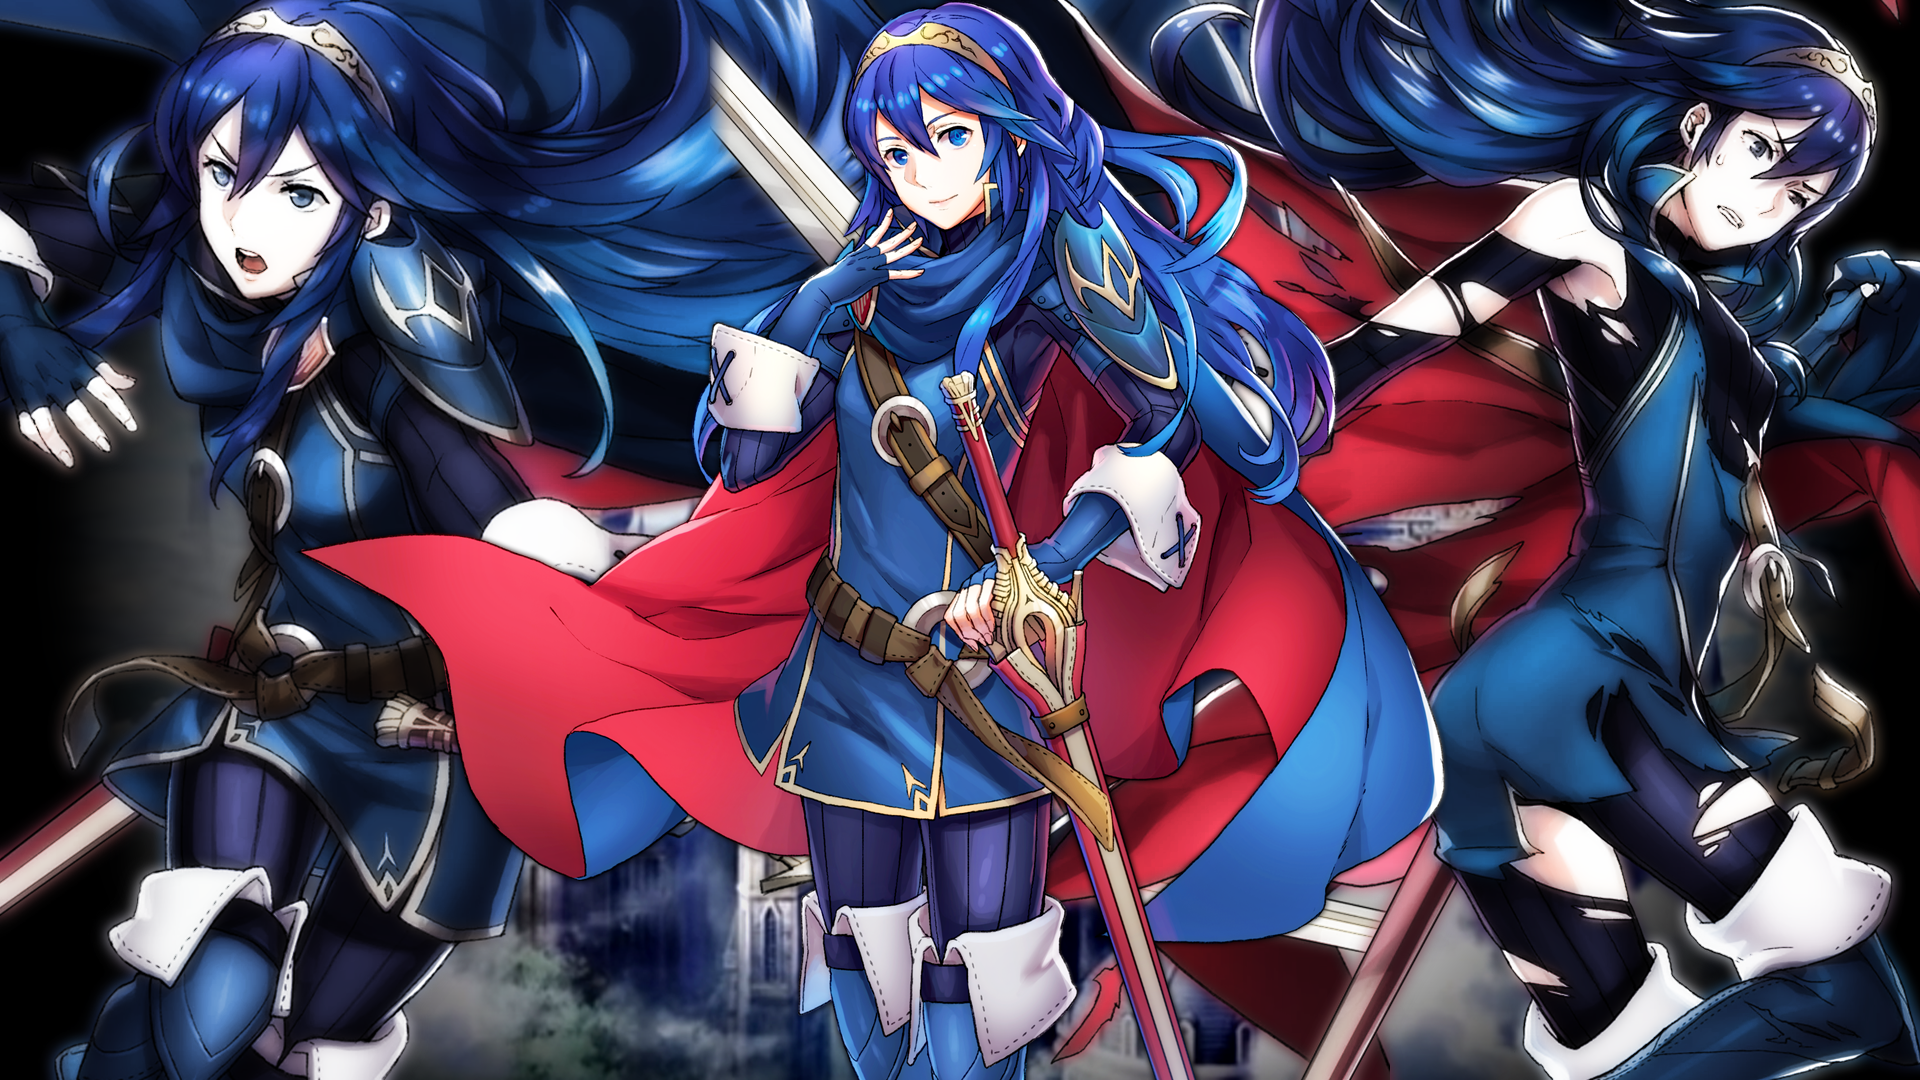 Lucina Fire Emblem Awakening Ps4wallpapers Com